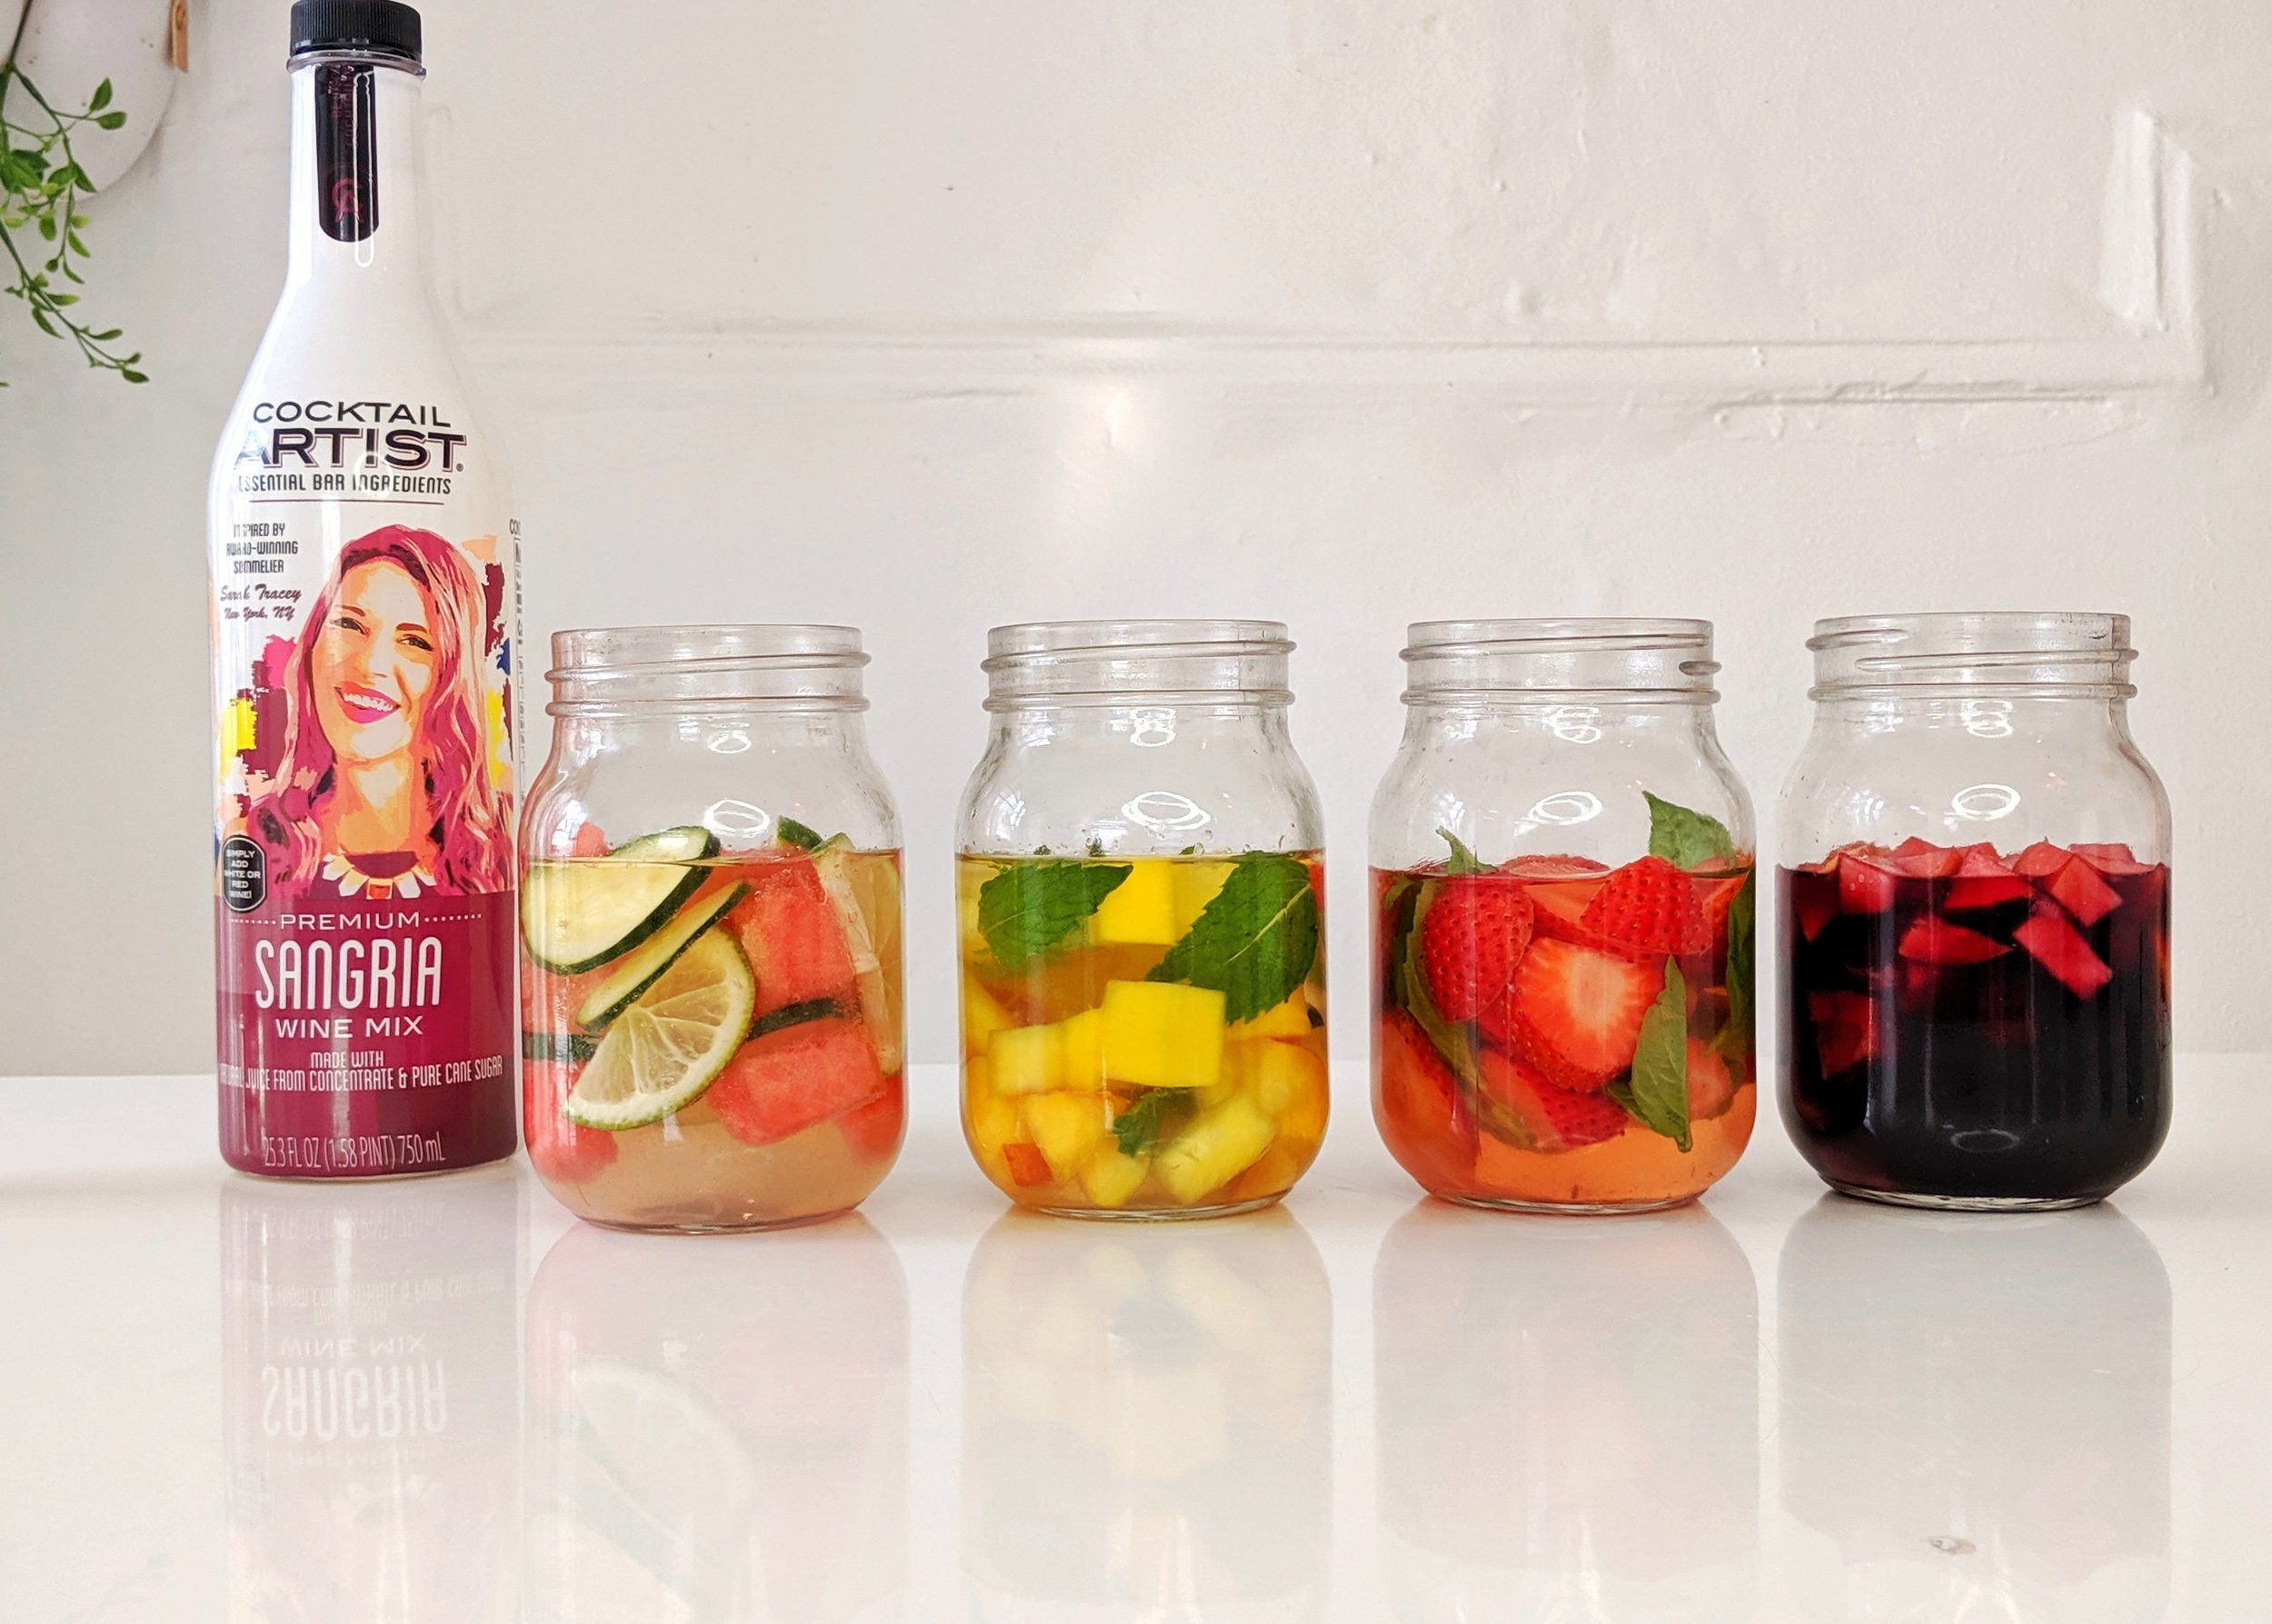 Sangria 4 Ways is easy with Cocktail Artist Premium Sangria Wine Mix!